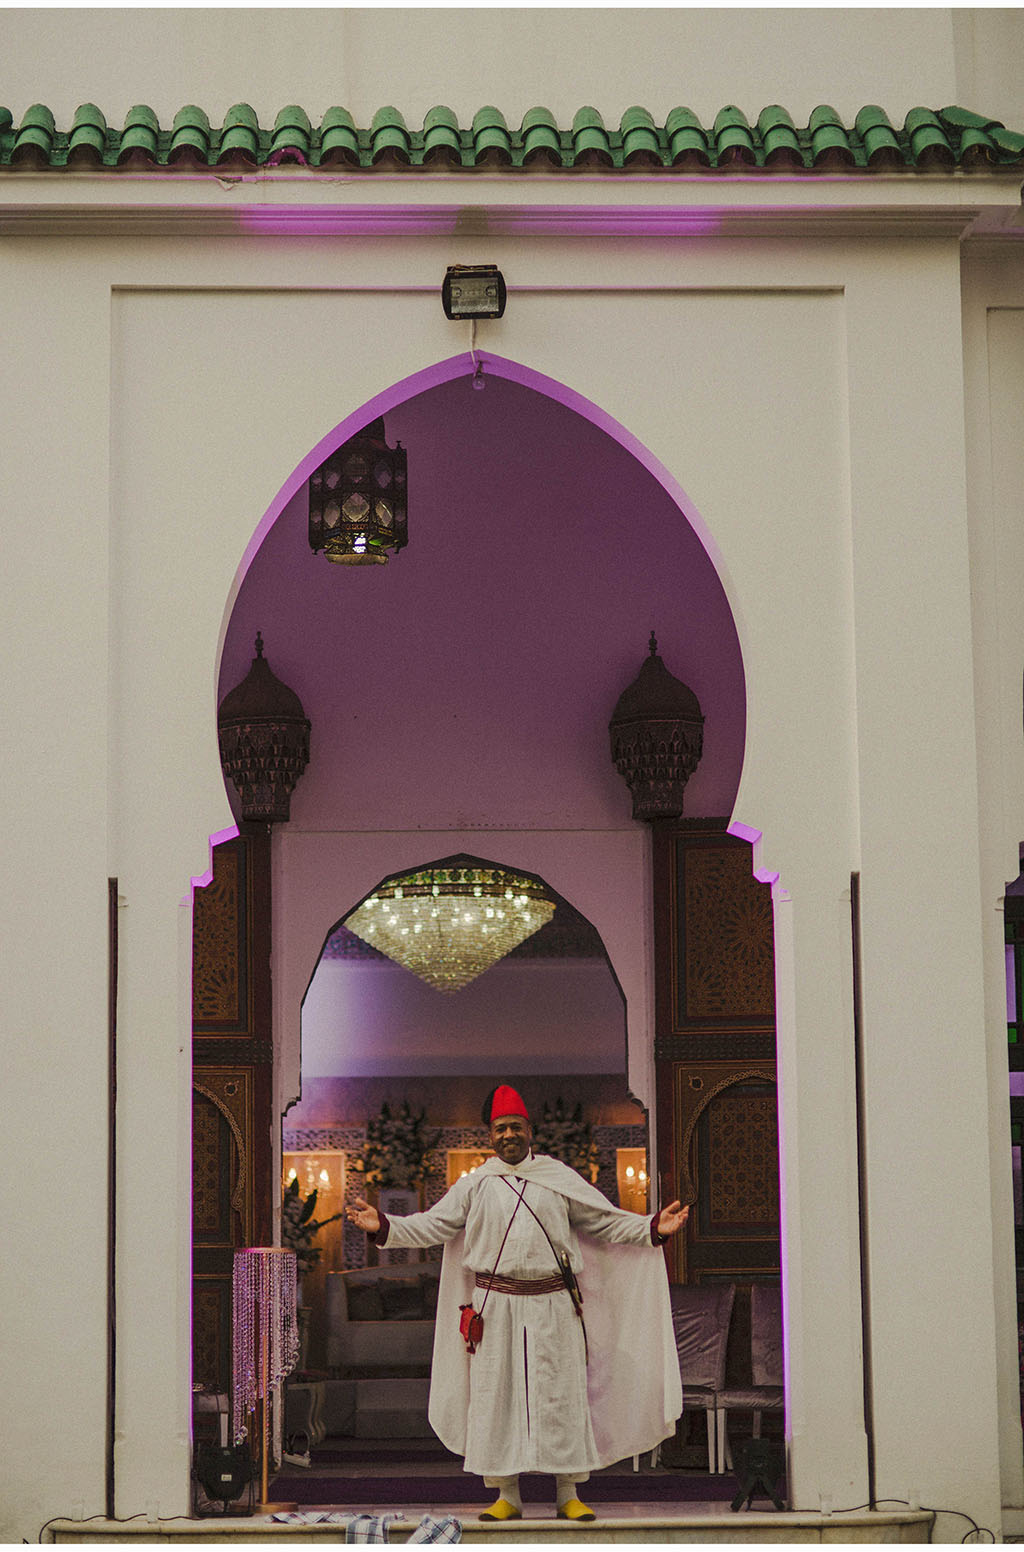 boda-y-arte-fotografo-de-bodas-marrakech-marruecos-wedding-photopgrapher062